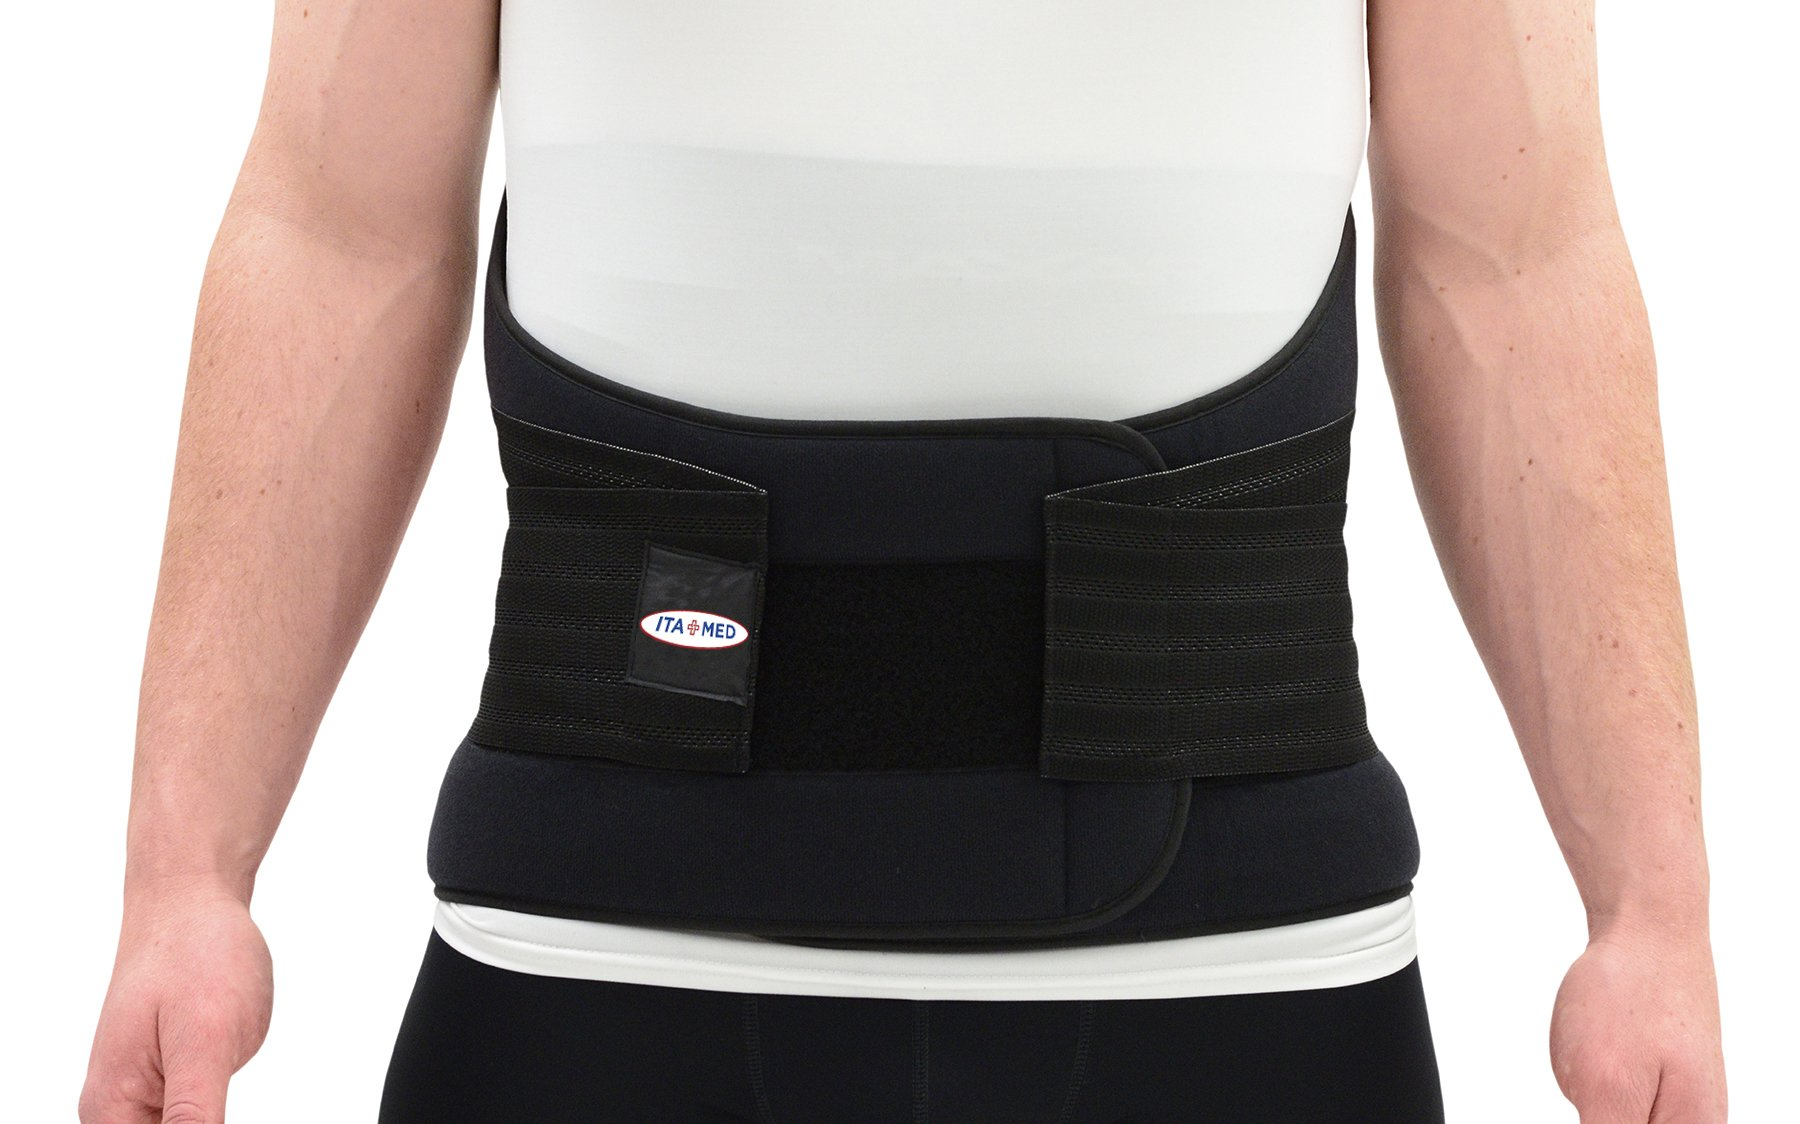 ITA-MED Improved Extra Strong Lower Back Support, Small BL, 12 Inch Wide